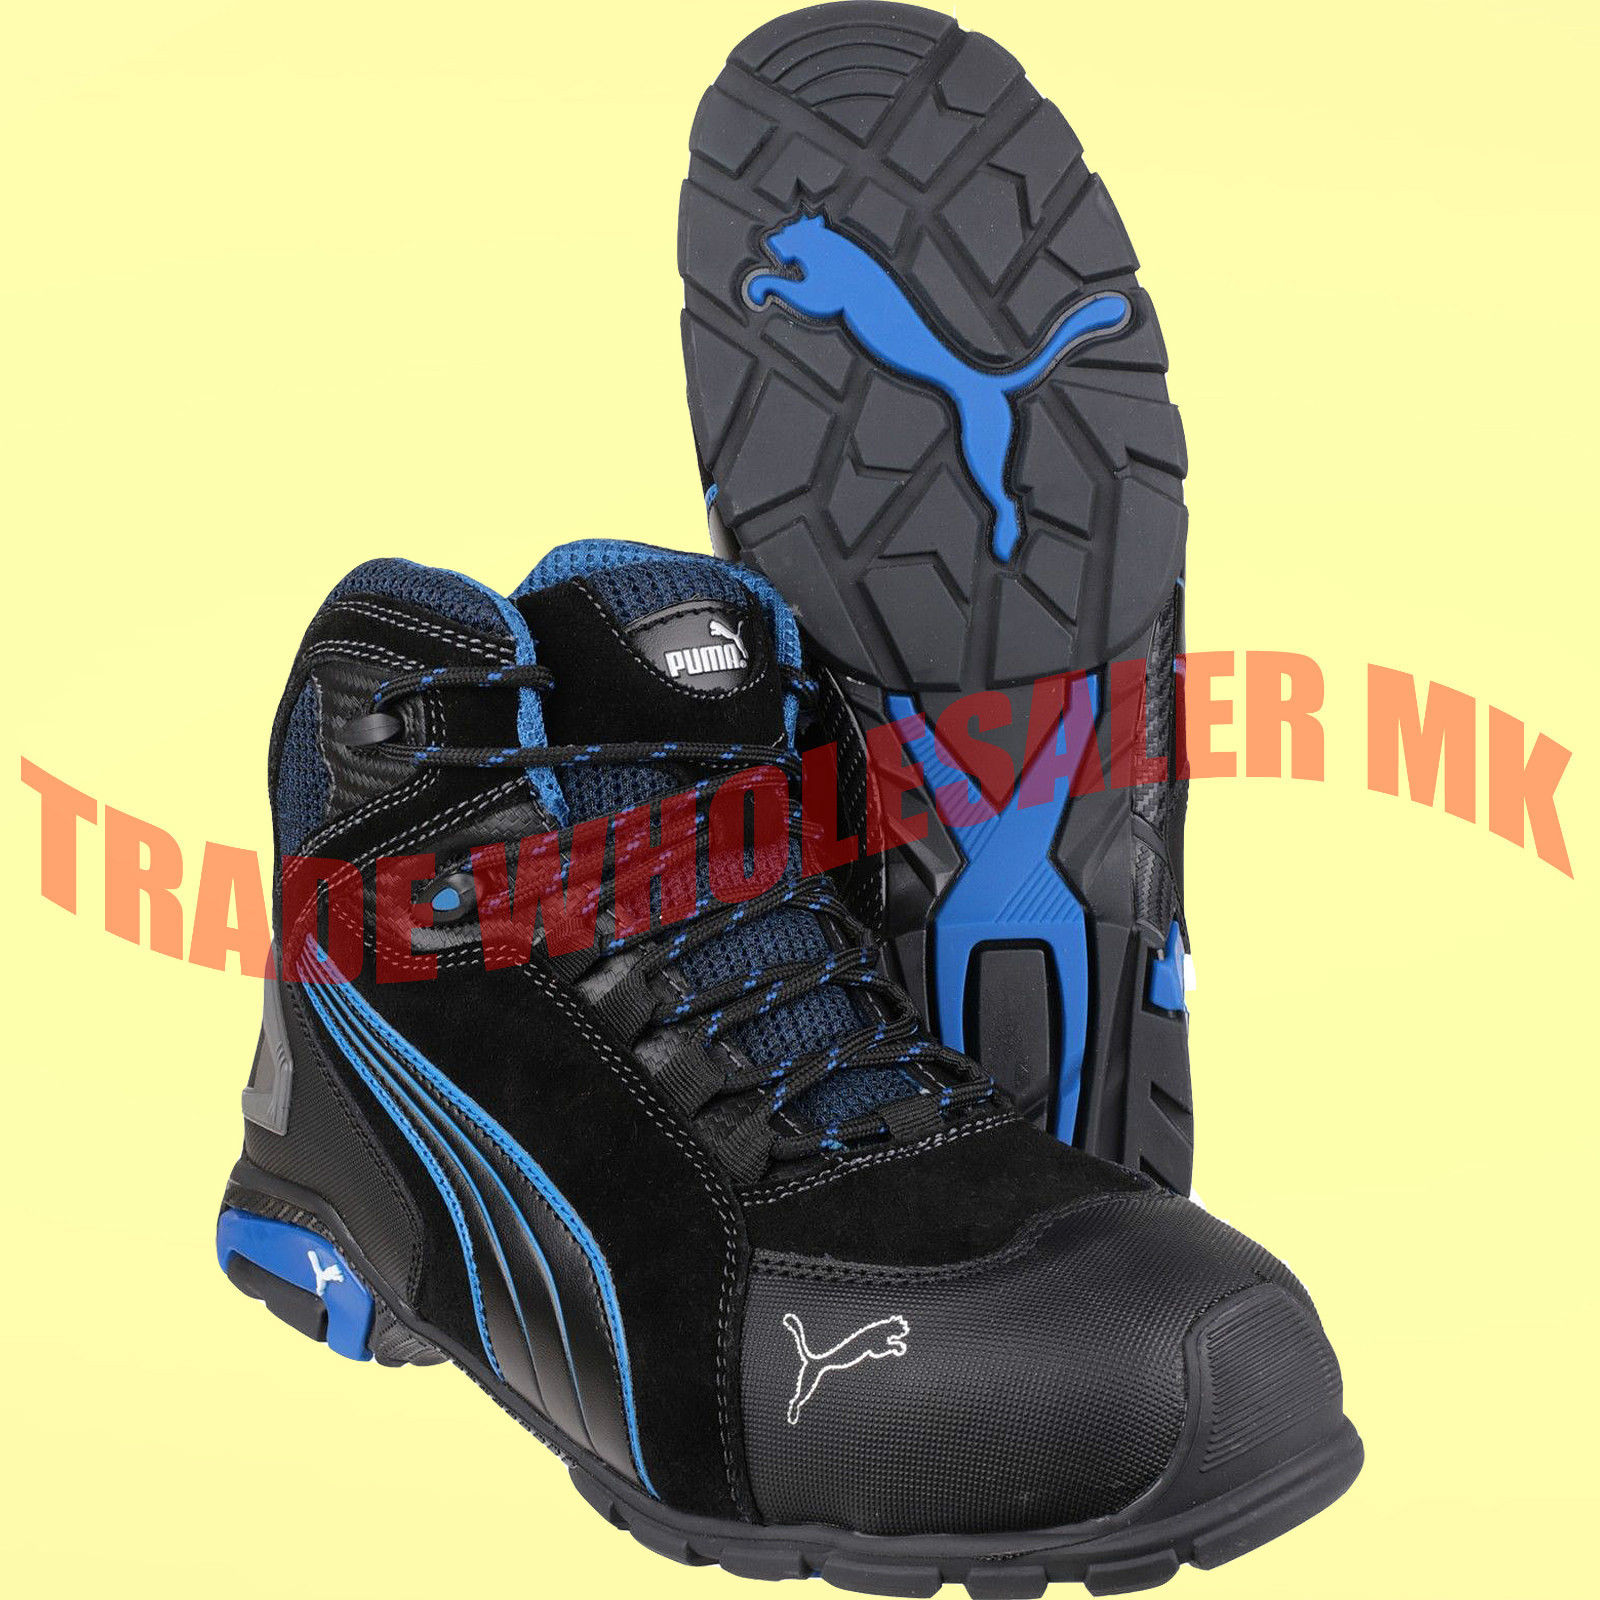 9470ef15e99 Puma Rio Industrial Mens S3 SRC Safety Midsole   Toe Cap Trainers Boots